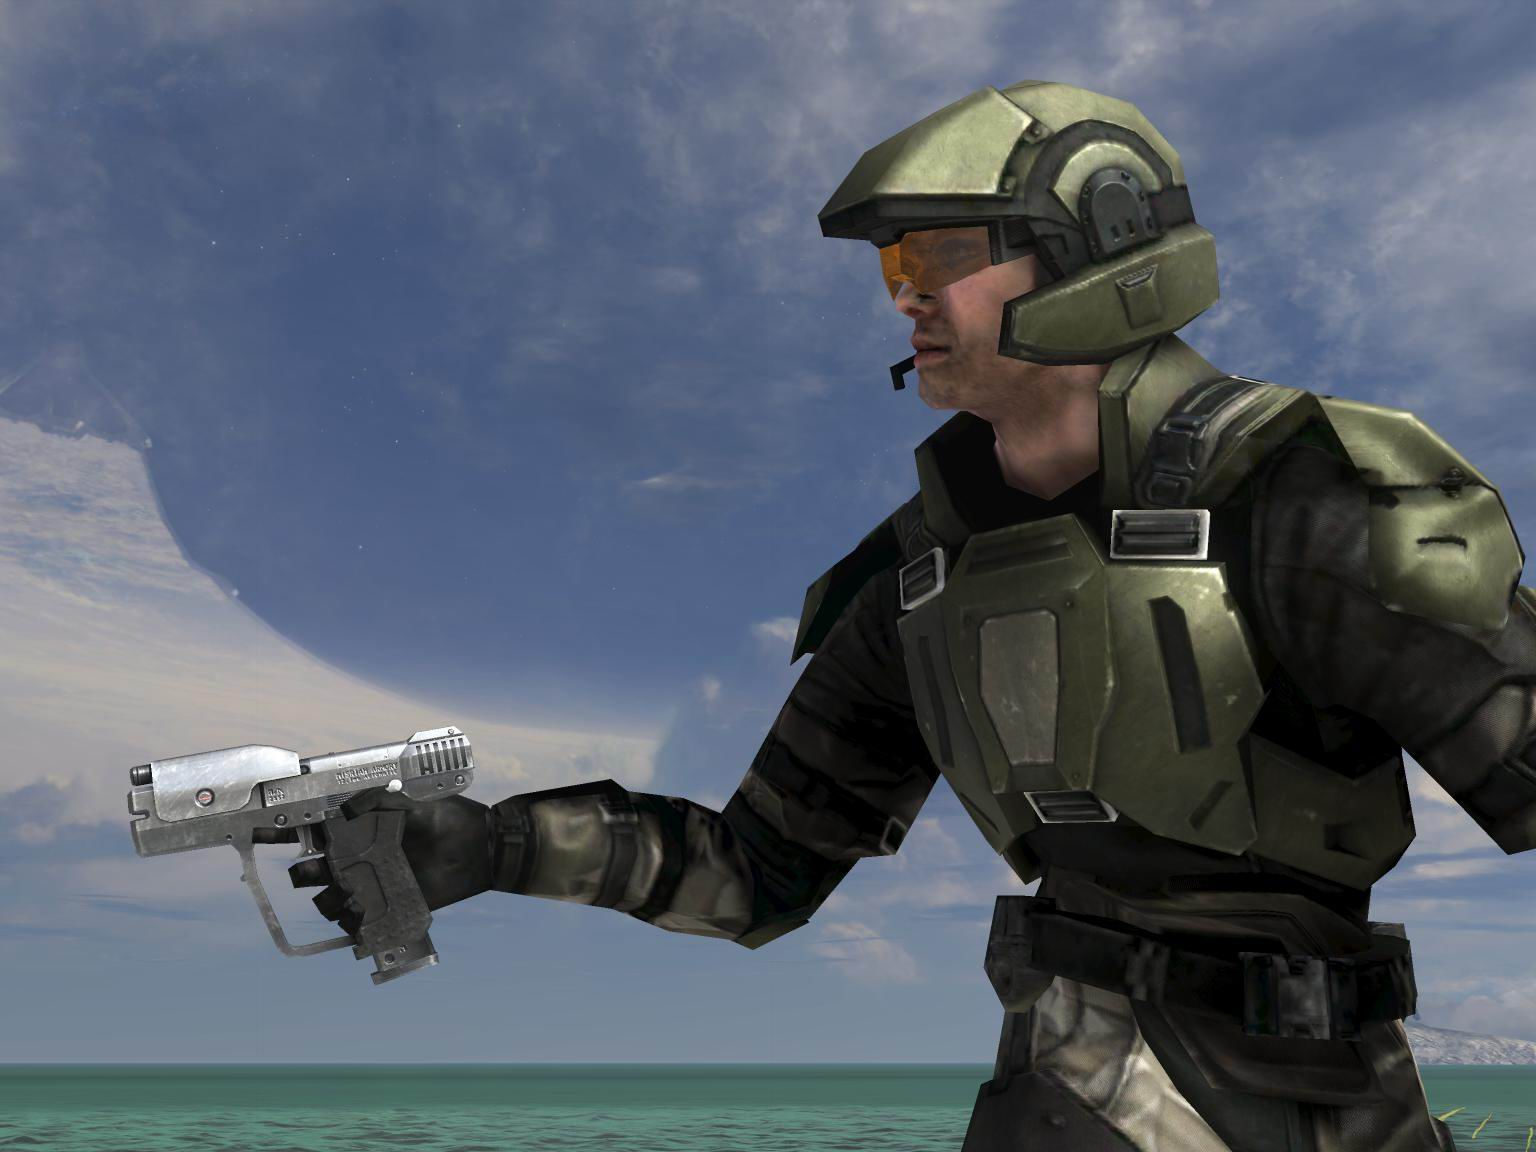 Halo 3 Marine And Bravo Kilos Arma 3 Addons Mods Discussion